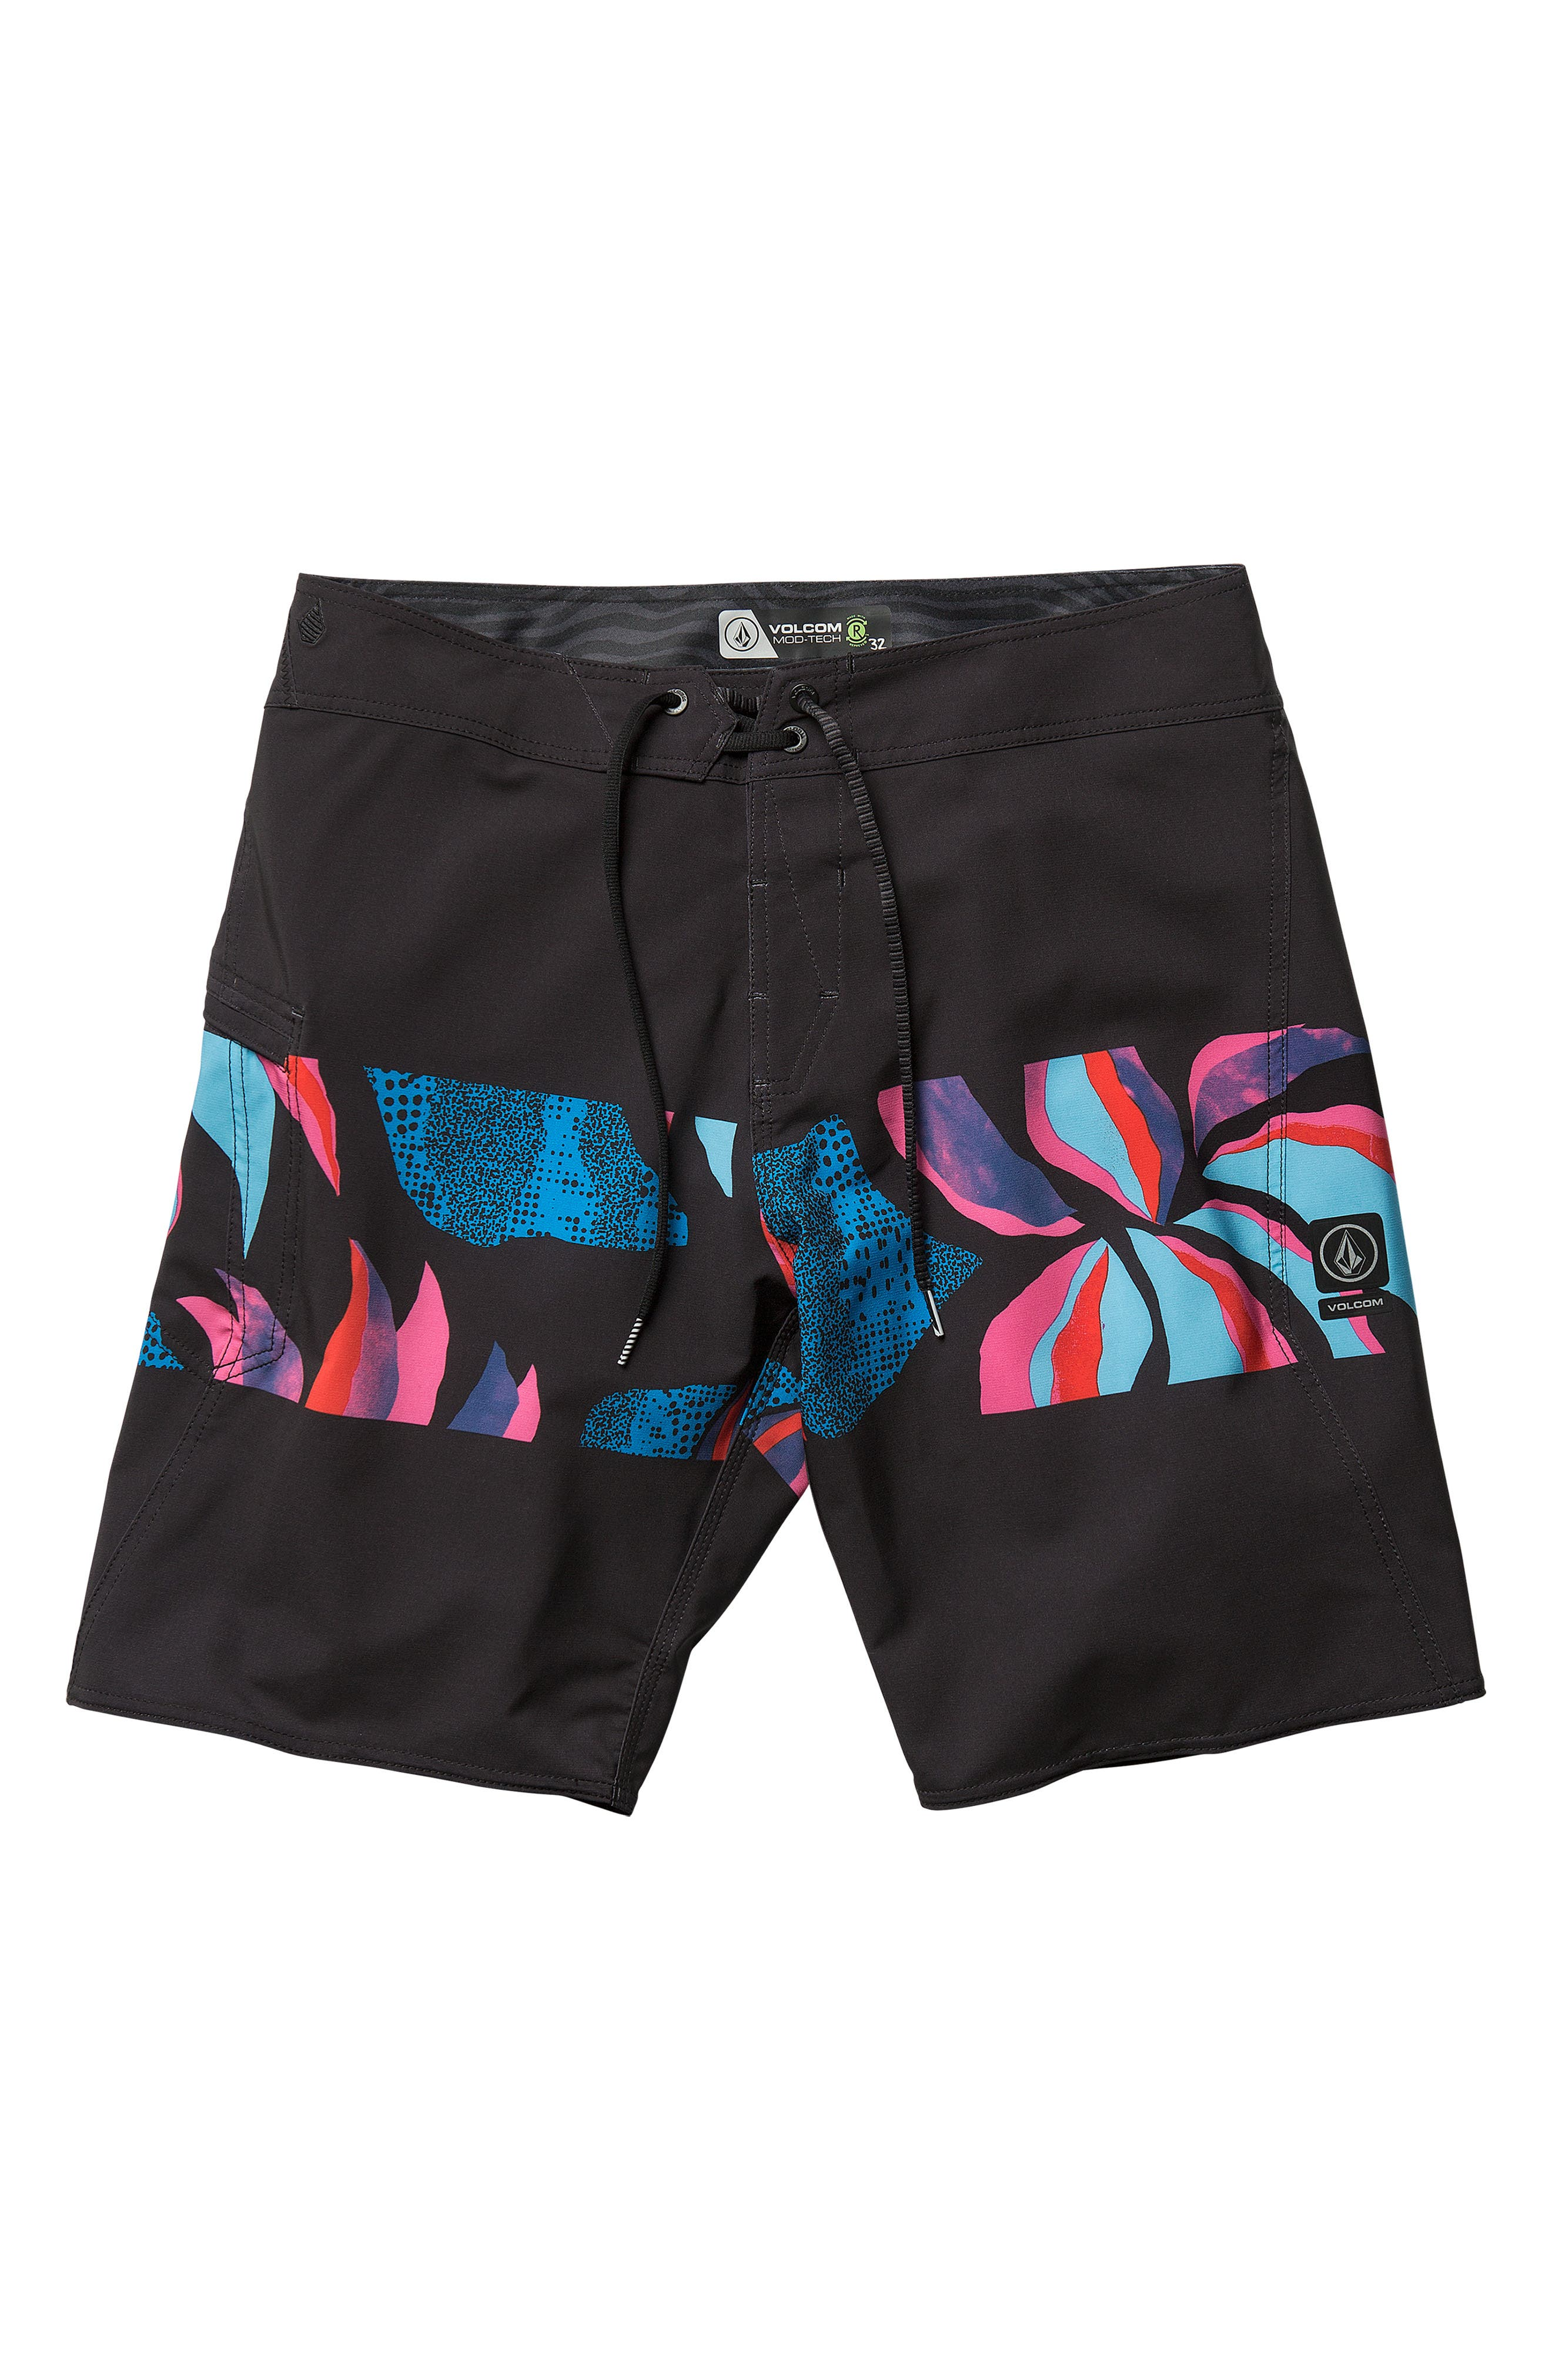 Macaw Mod Board Shorts,                             Alternate thumbnail 4, color,                             NEW BLACK